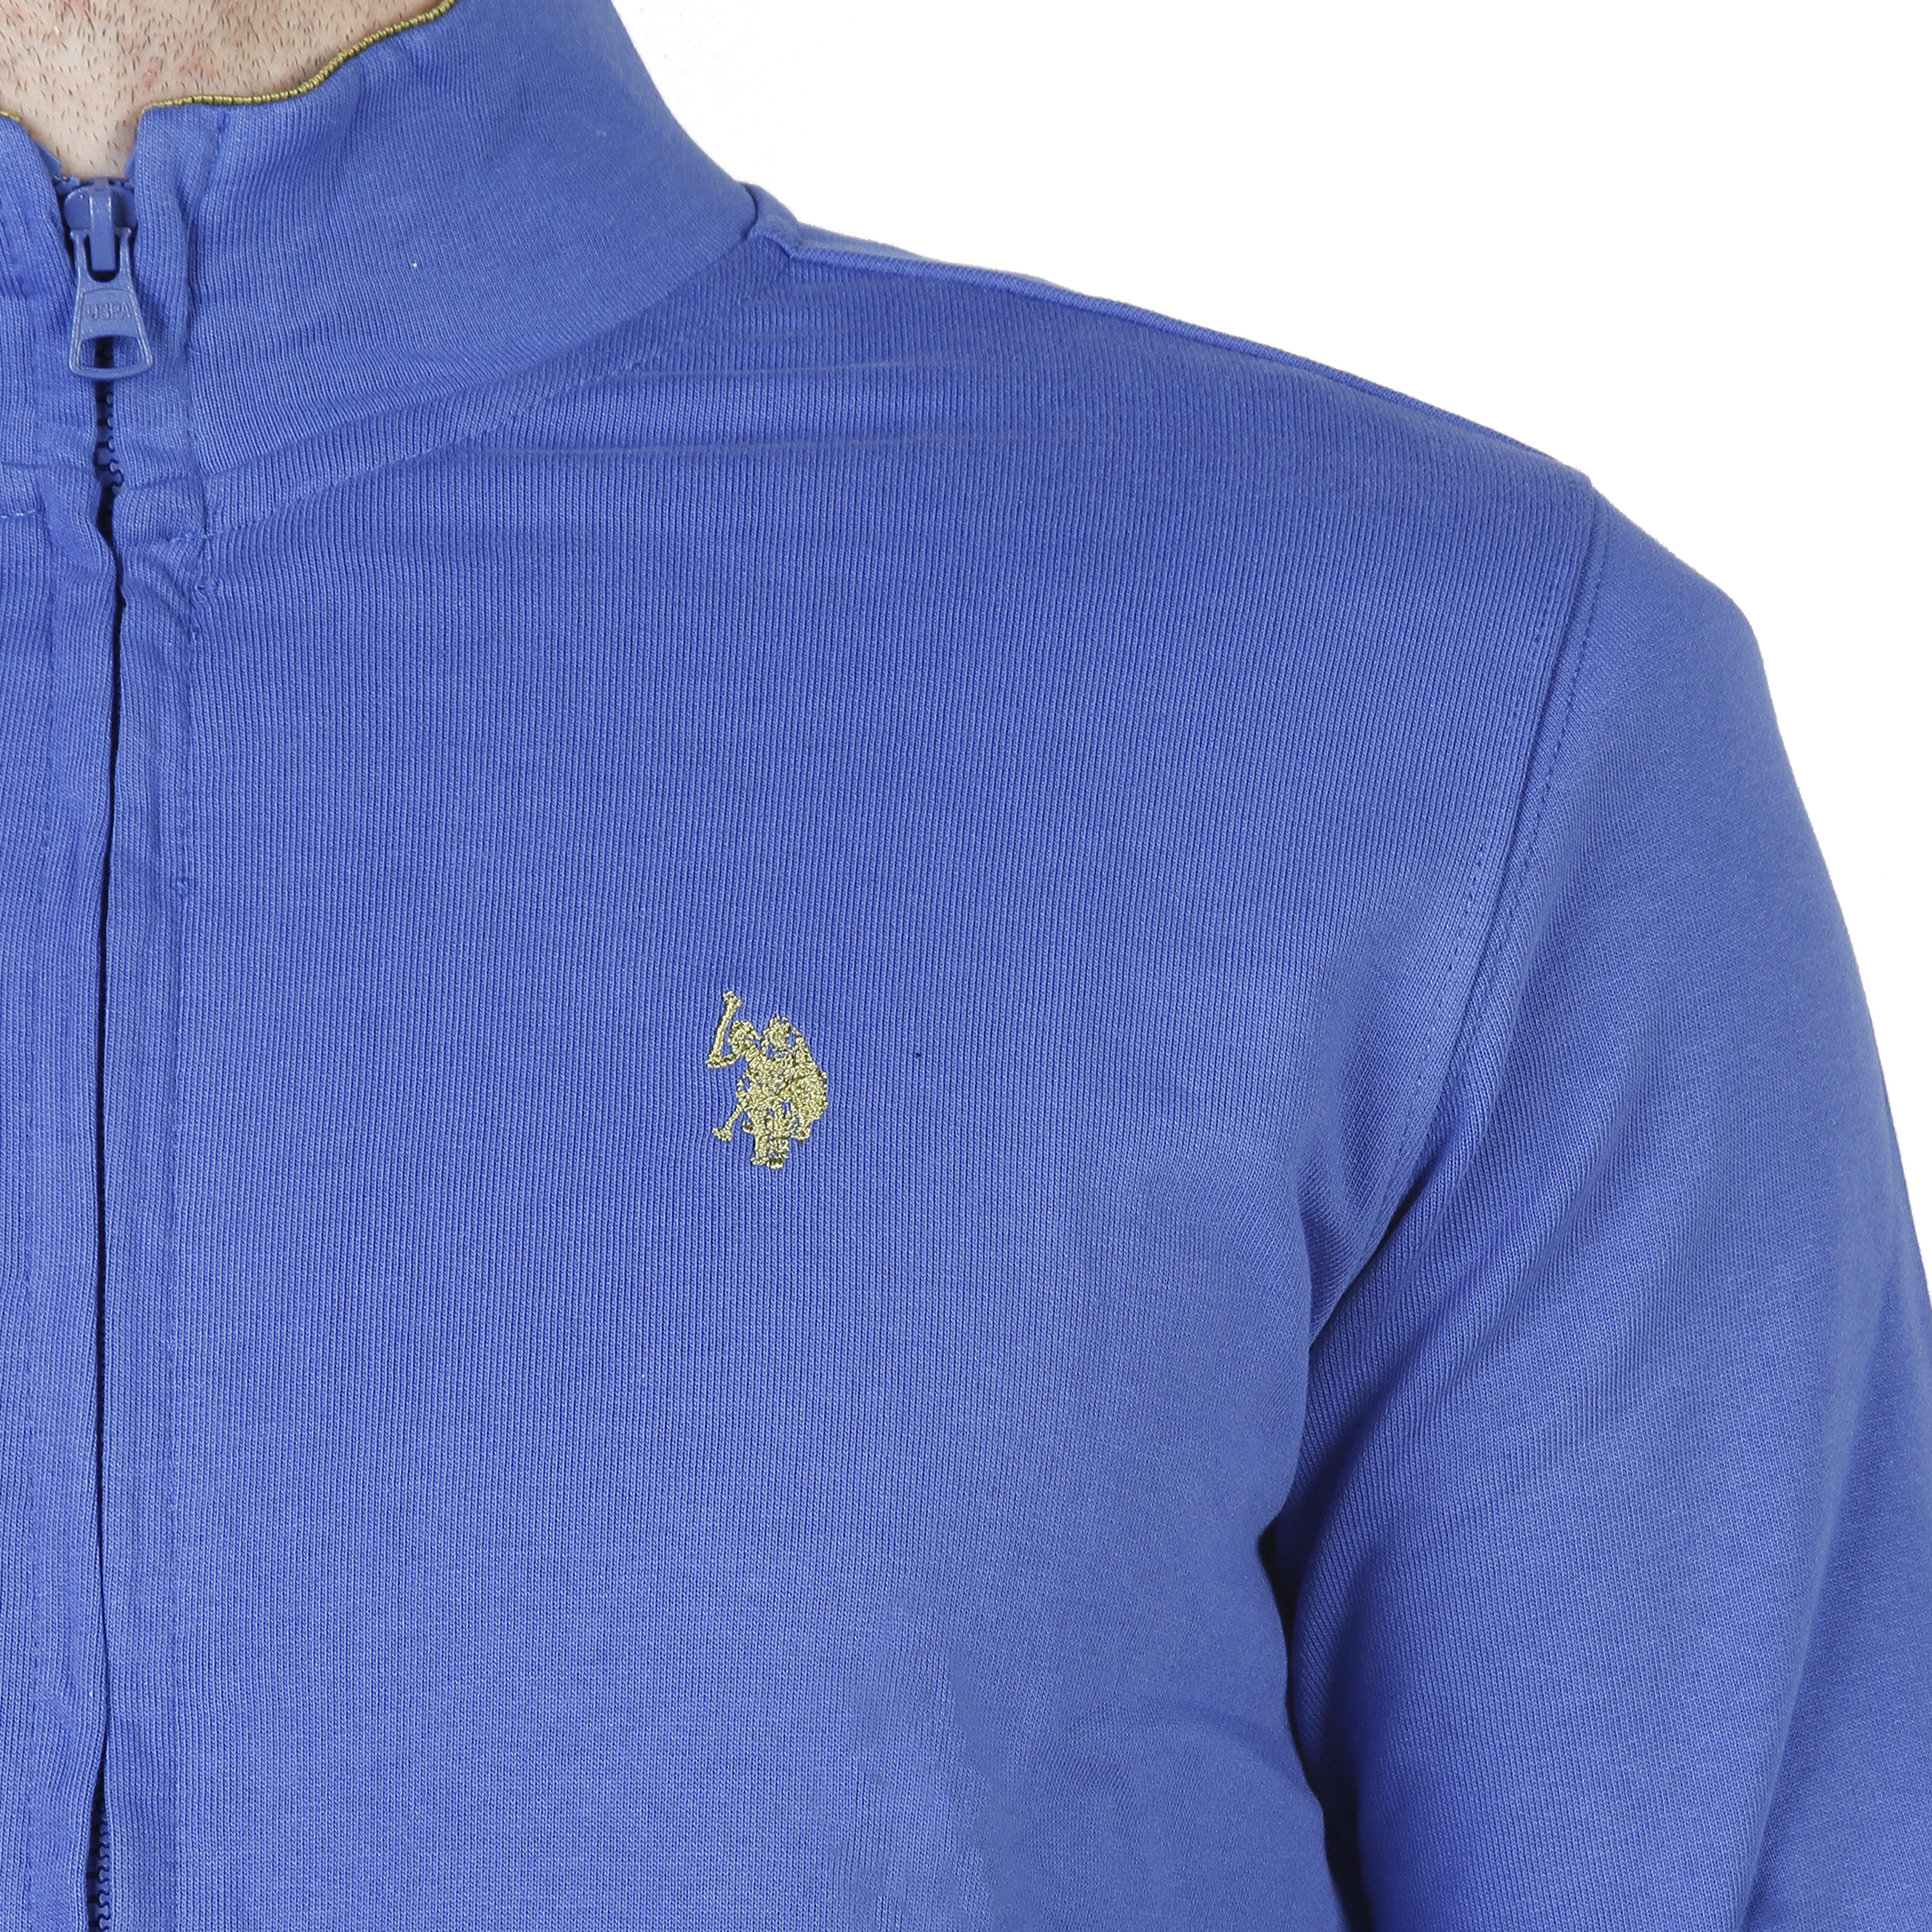 Sweatshirts  U.S. Polo 42274_49333 blue